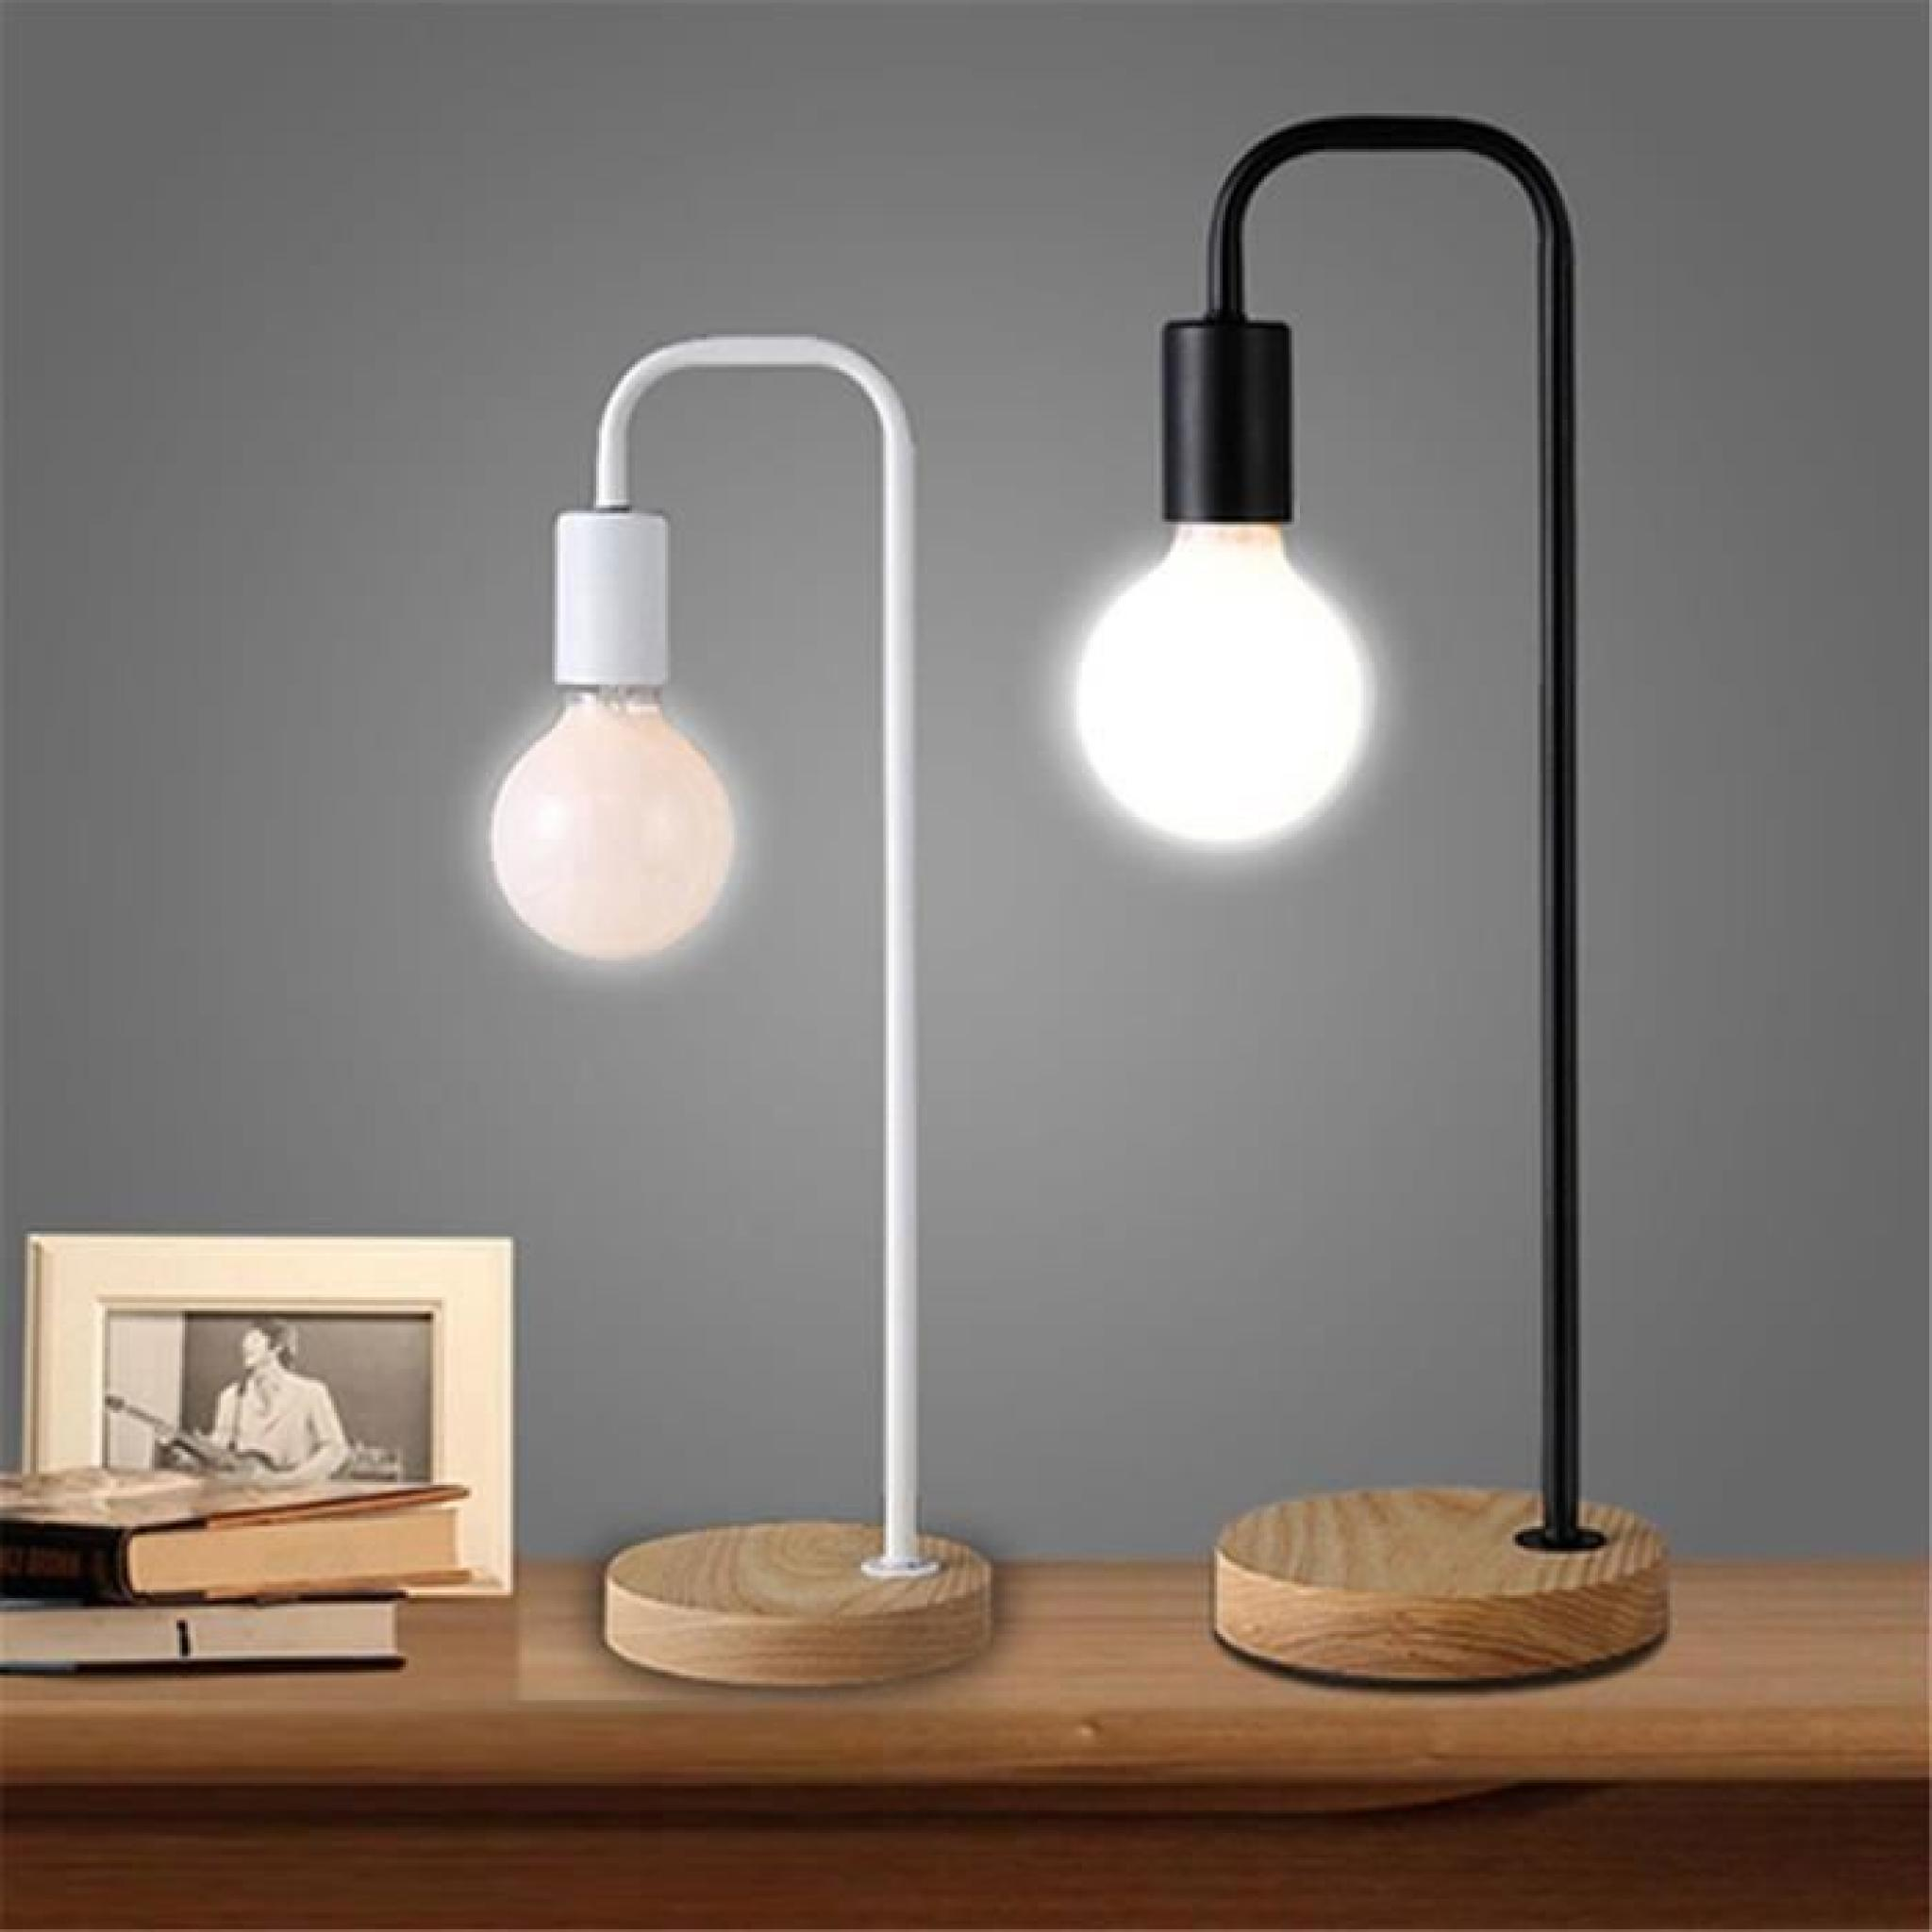 ferandhome lampe de table chevet m tallique moderne lumi re pour etude lecture bureau chambre. Black Bedroom Furniture Sets. Home Design Ideas